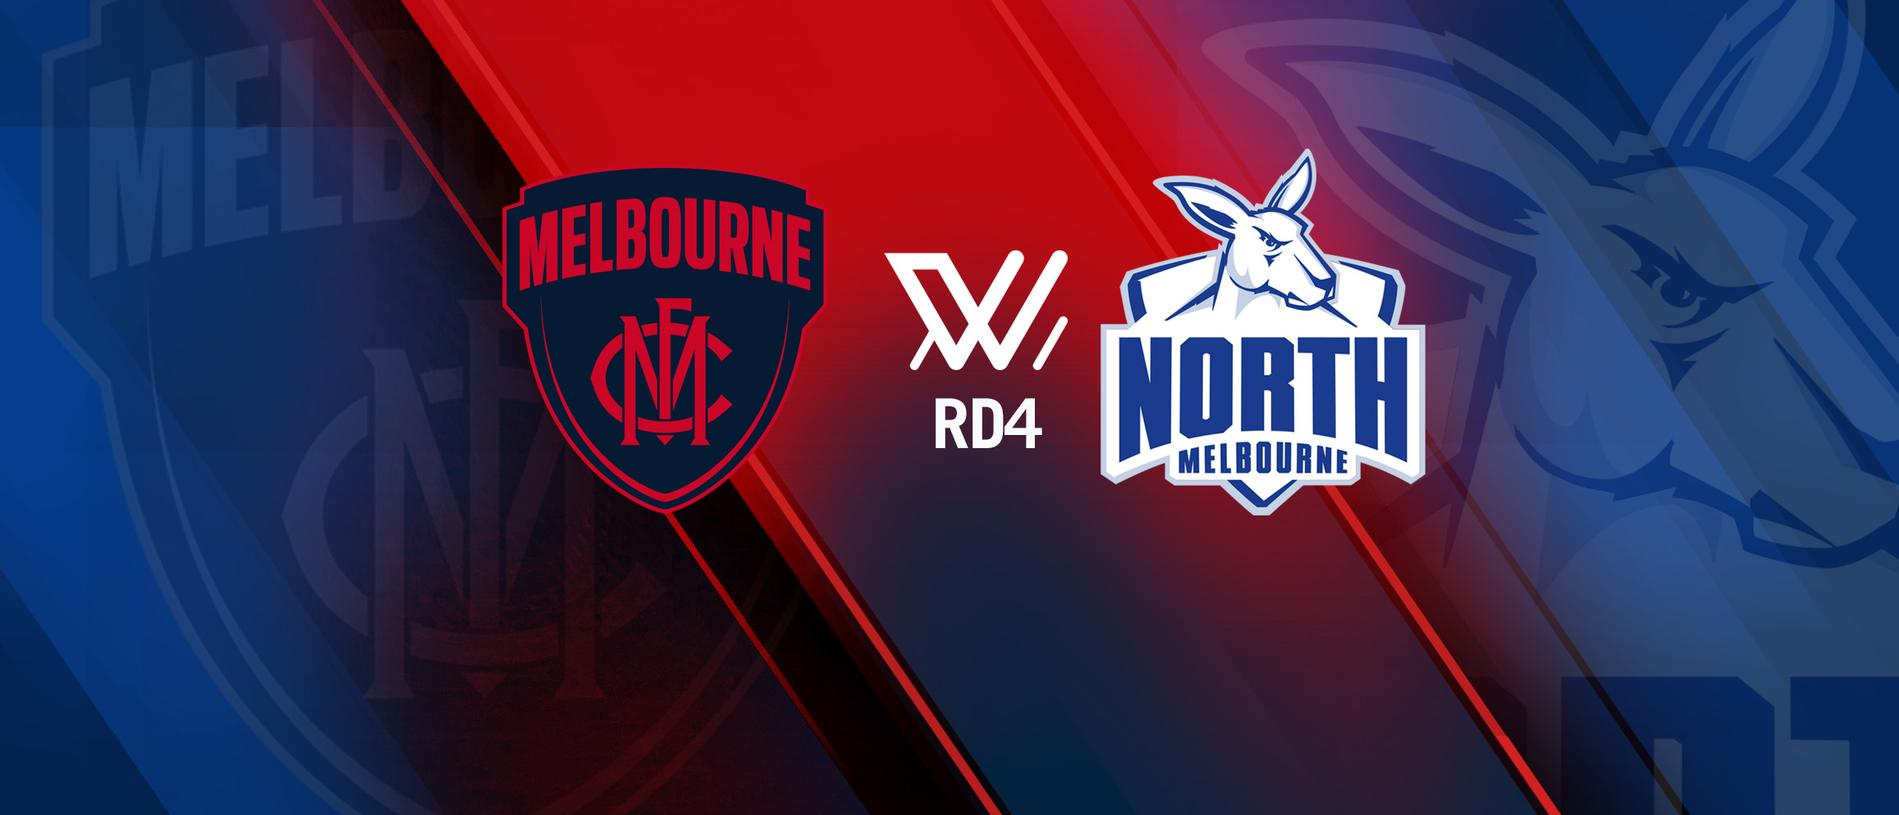 Melbourne faces the North Melbourne Tasmanian Kangaroos in Round 4 of the 2019 AFLW season.